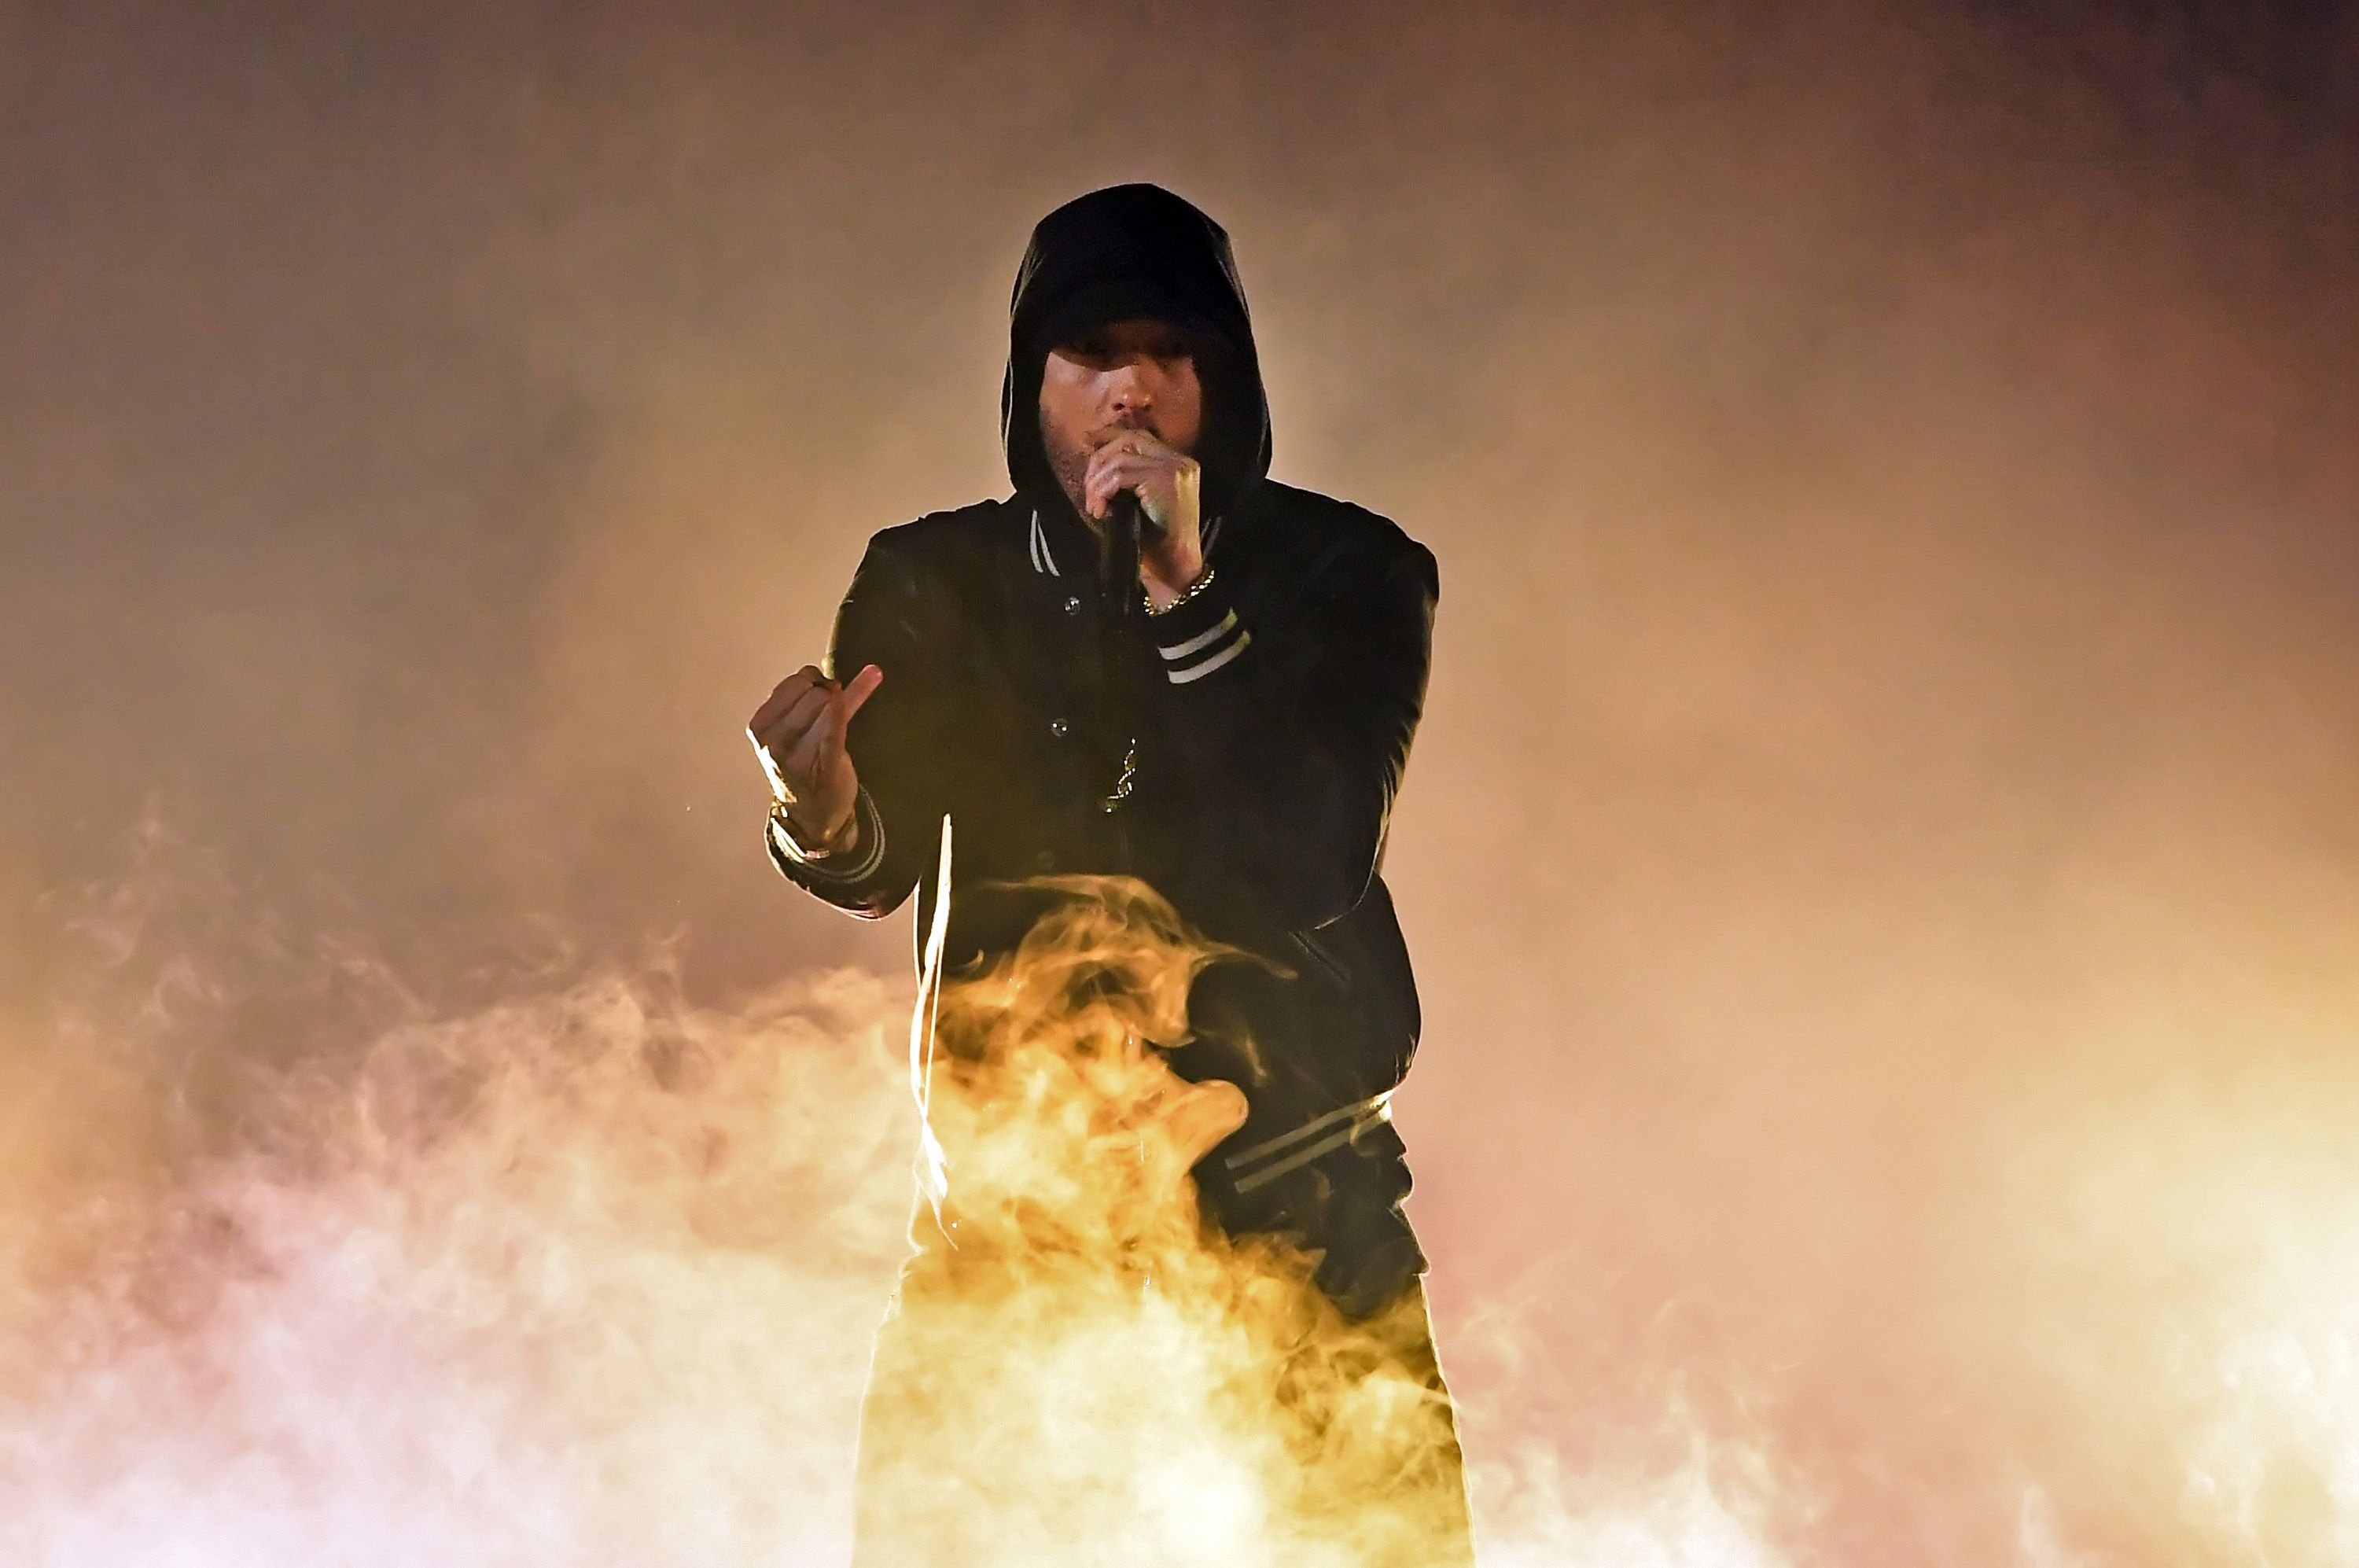 Eminem performing in front of a fire.